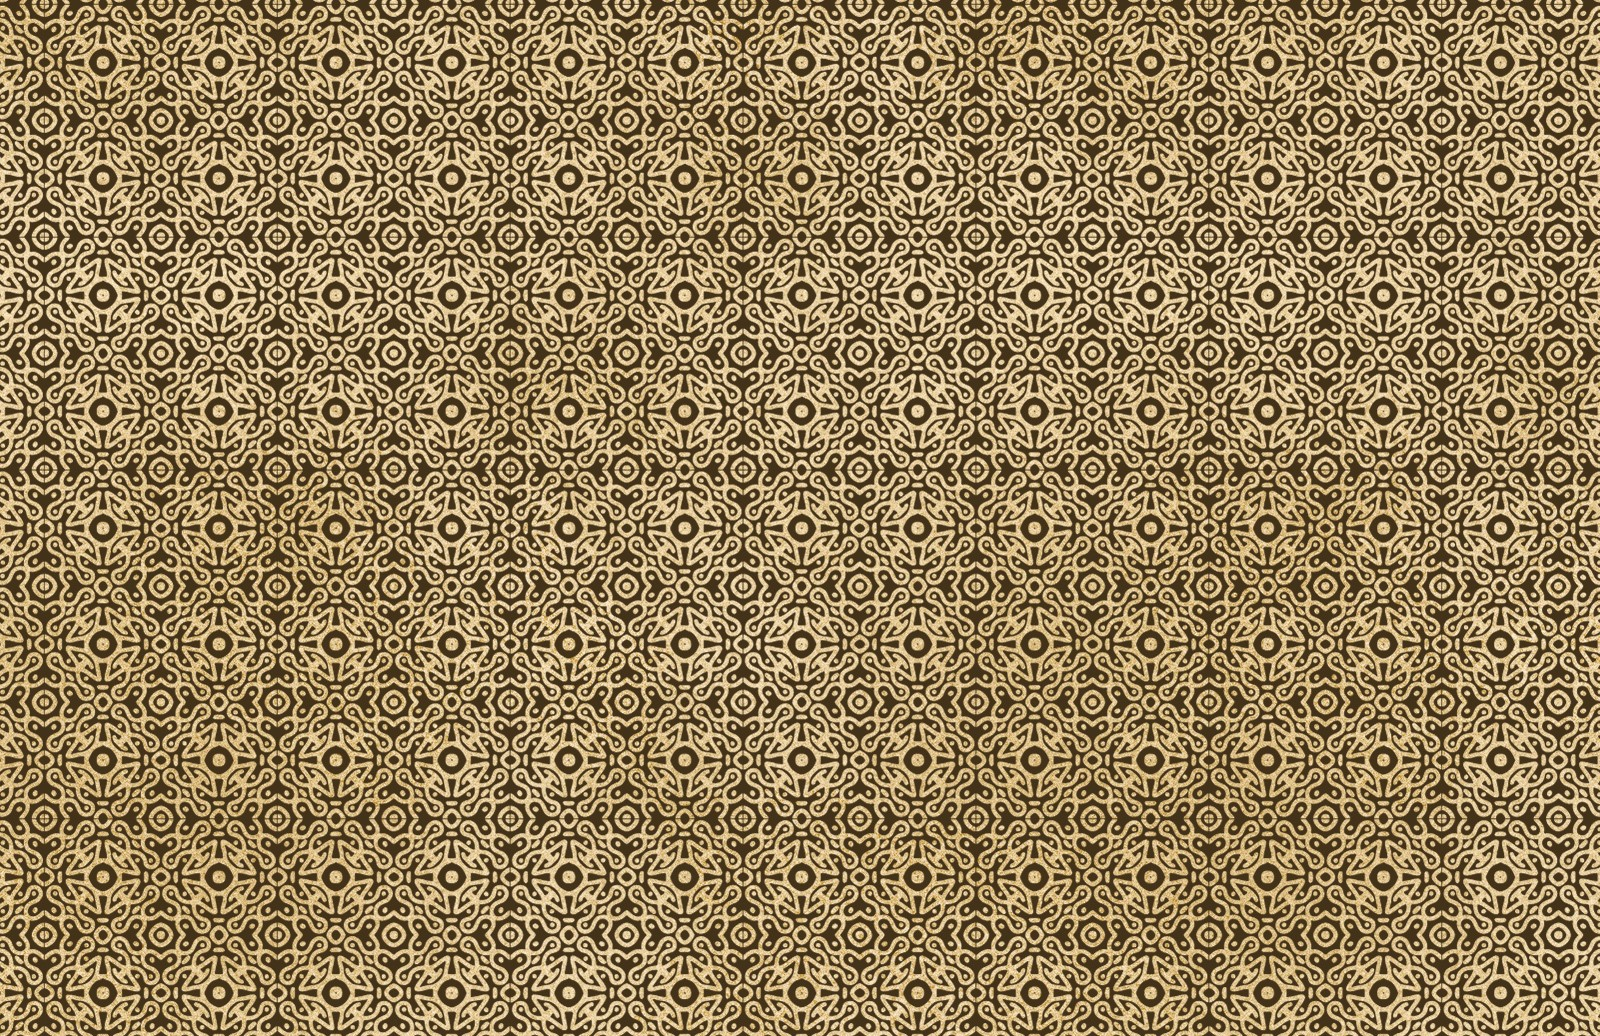 Elaborate Seamless Vector Patterns Preview 1A